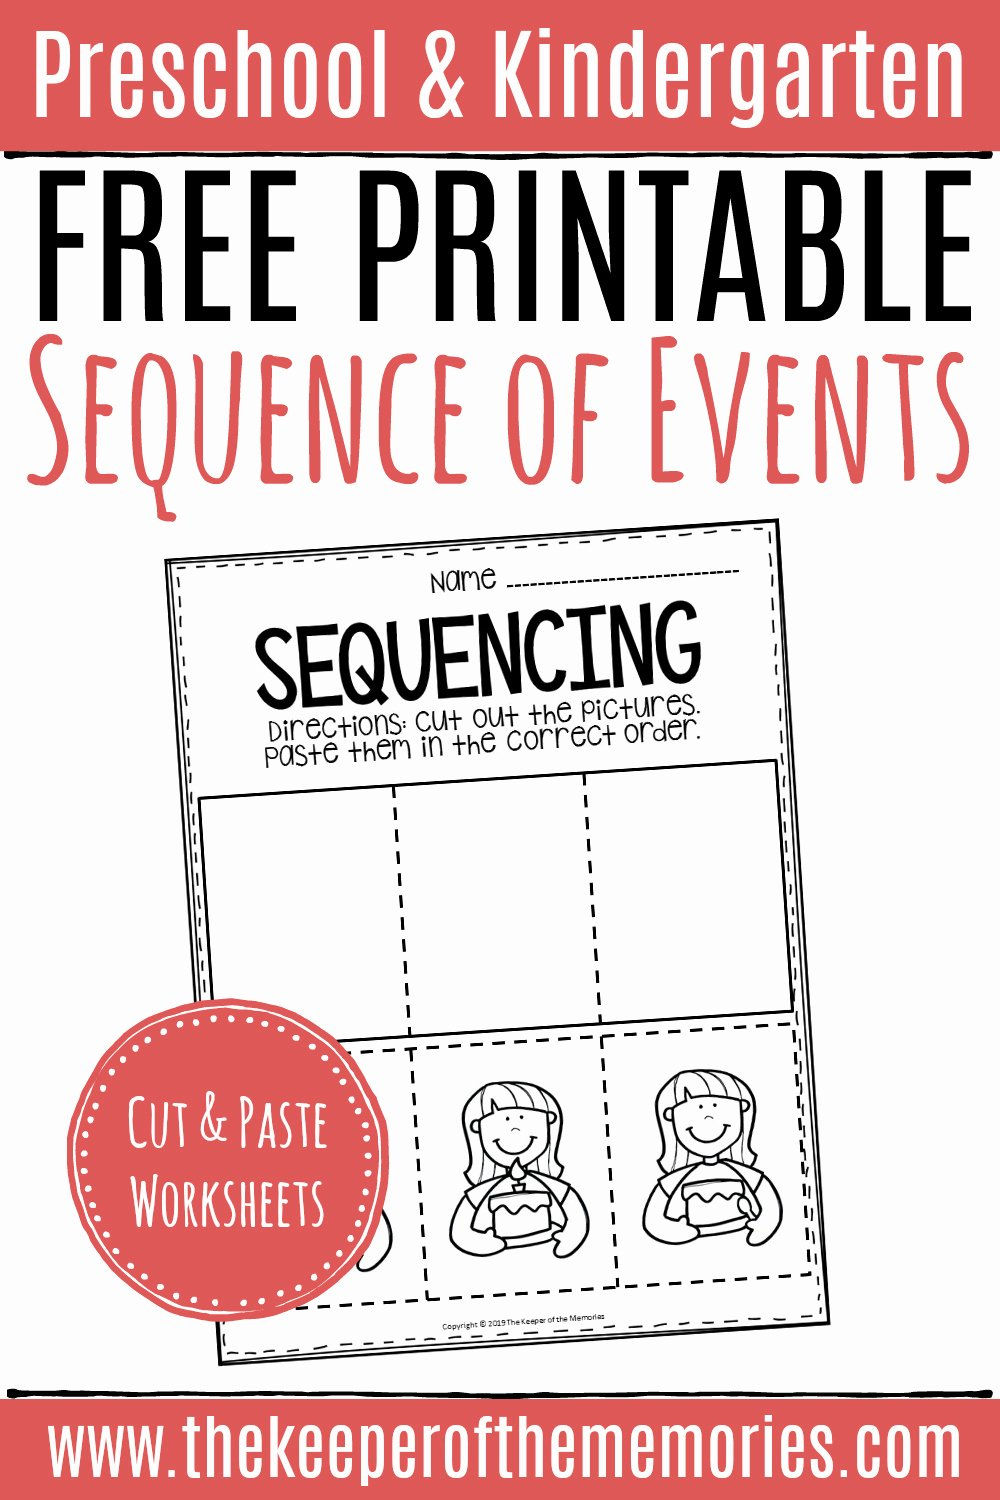 Cut and Paste Sequencing Worksheets Inspirational Free Printable Sequence Of events Worksheets